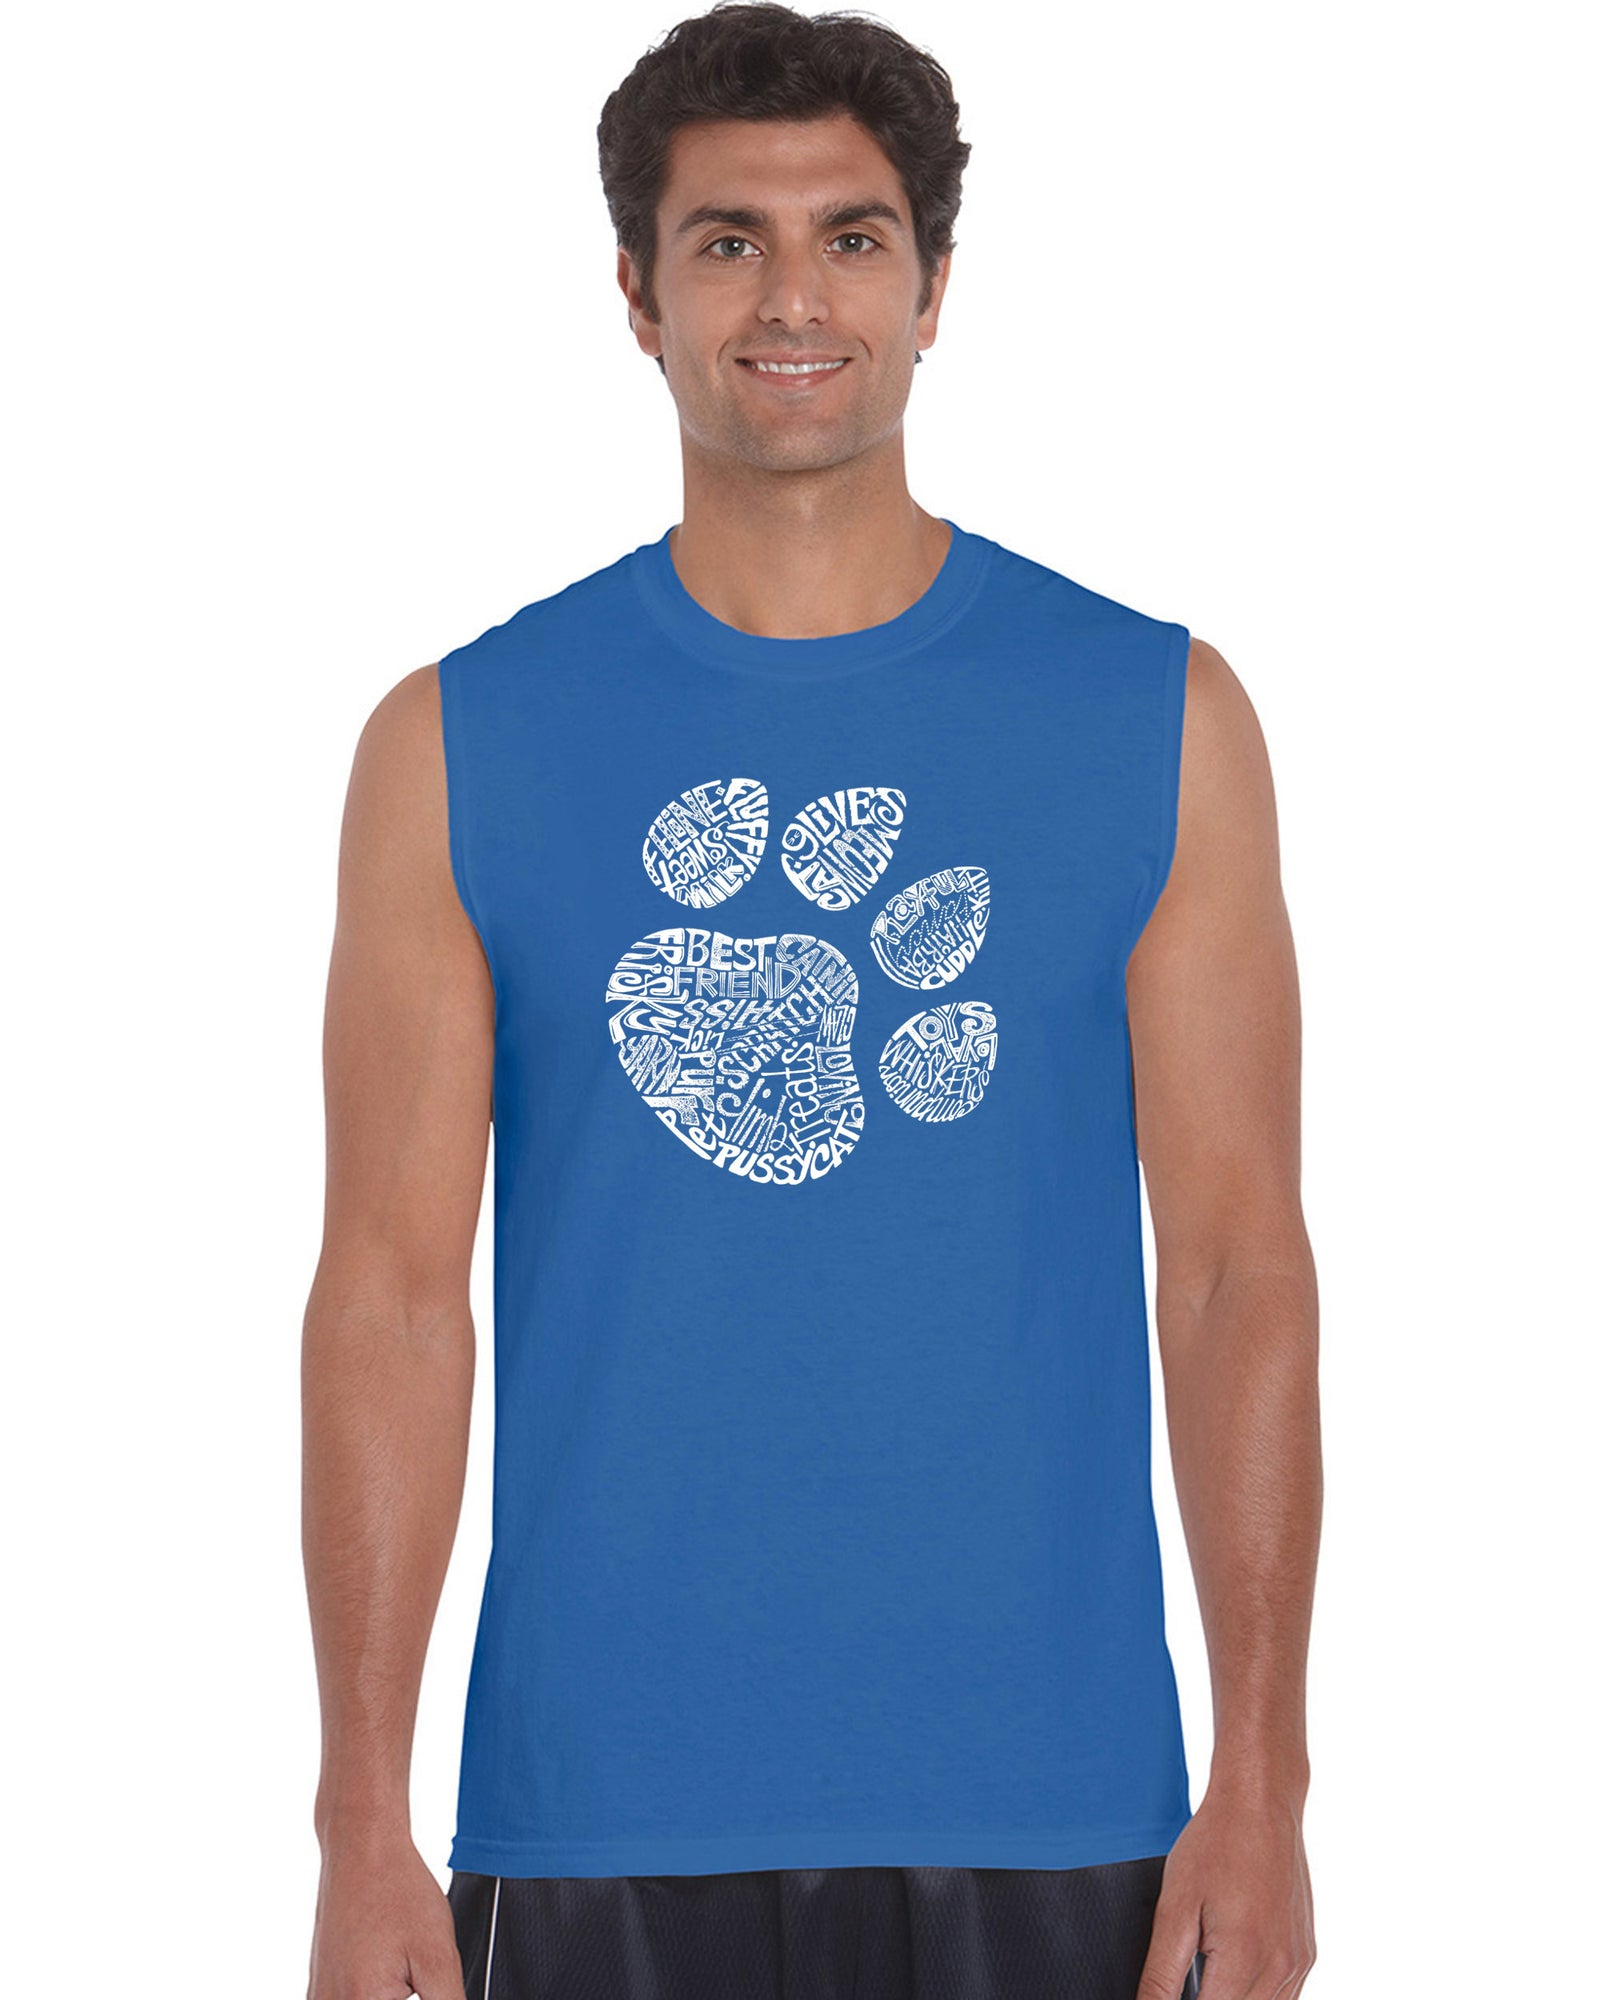 Men's Sleeveless T-shirt - Cat Paw